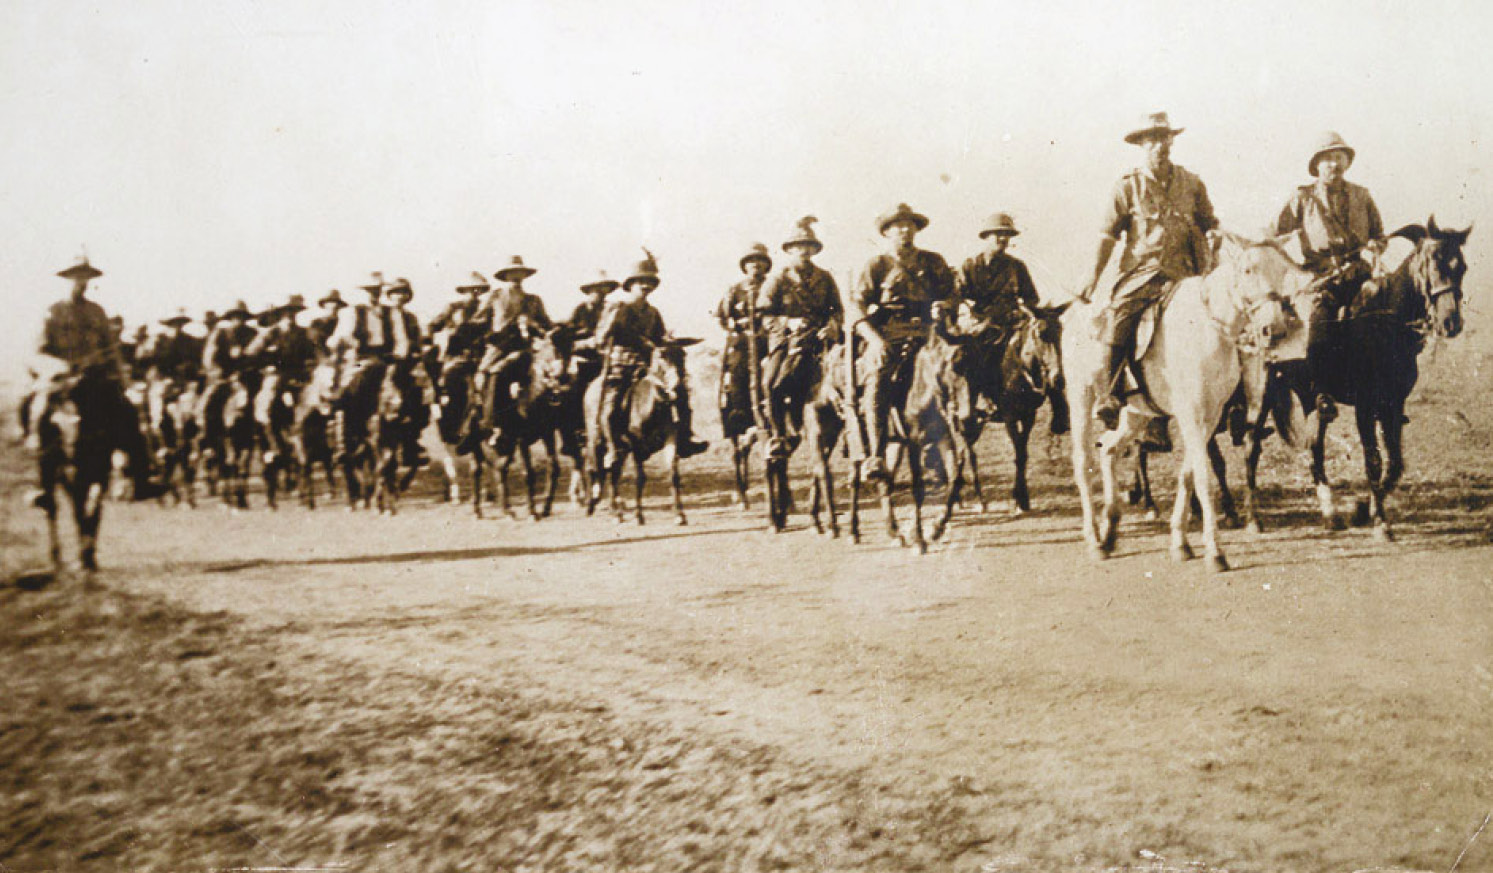 BELOW The East African Mounted Rifles, part of Smuts' army in 1916, on campaign in East Africa. The guerrilla leader was now waging a counter-insurgency war on behalf of his former enemy.